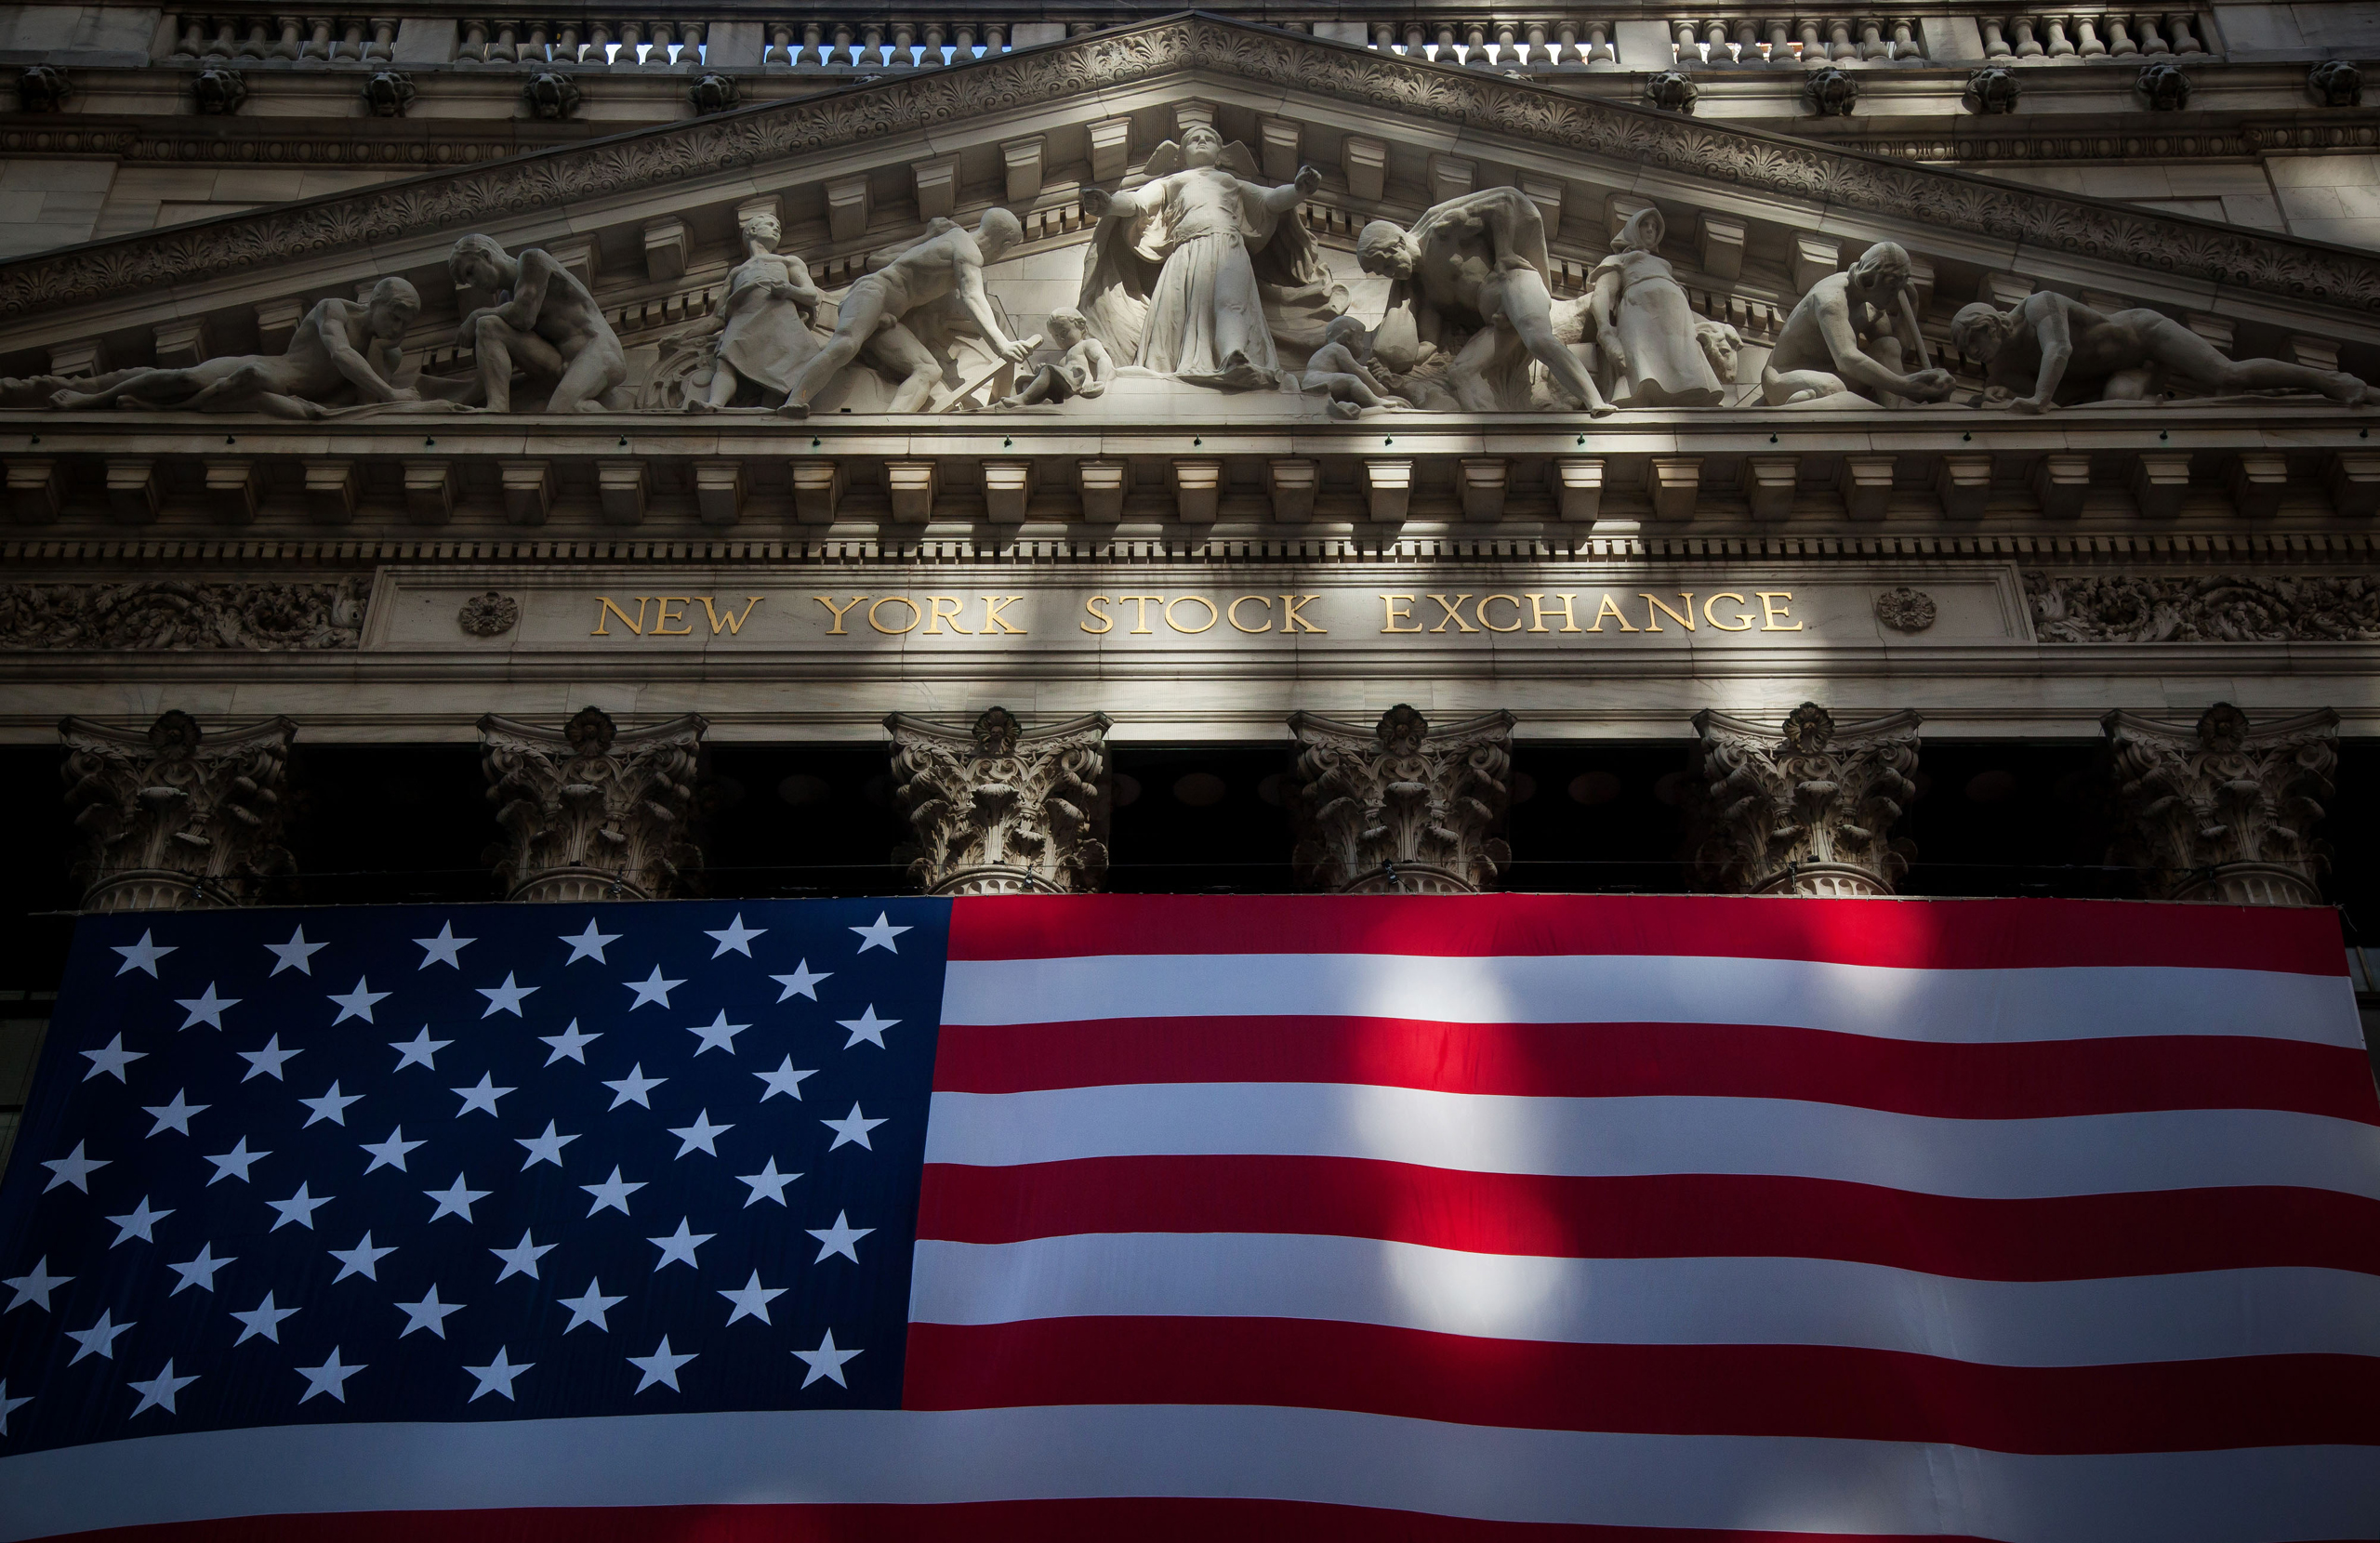 An American flag is displayed at the New York Stock Exchange (NYSE) in New York, U.S., on Nov. 11, 2016.